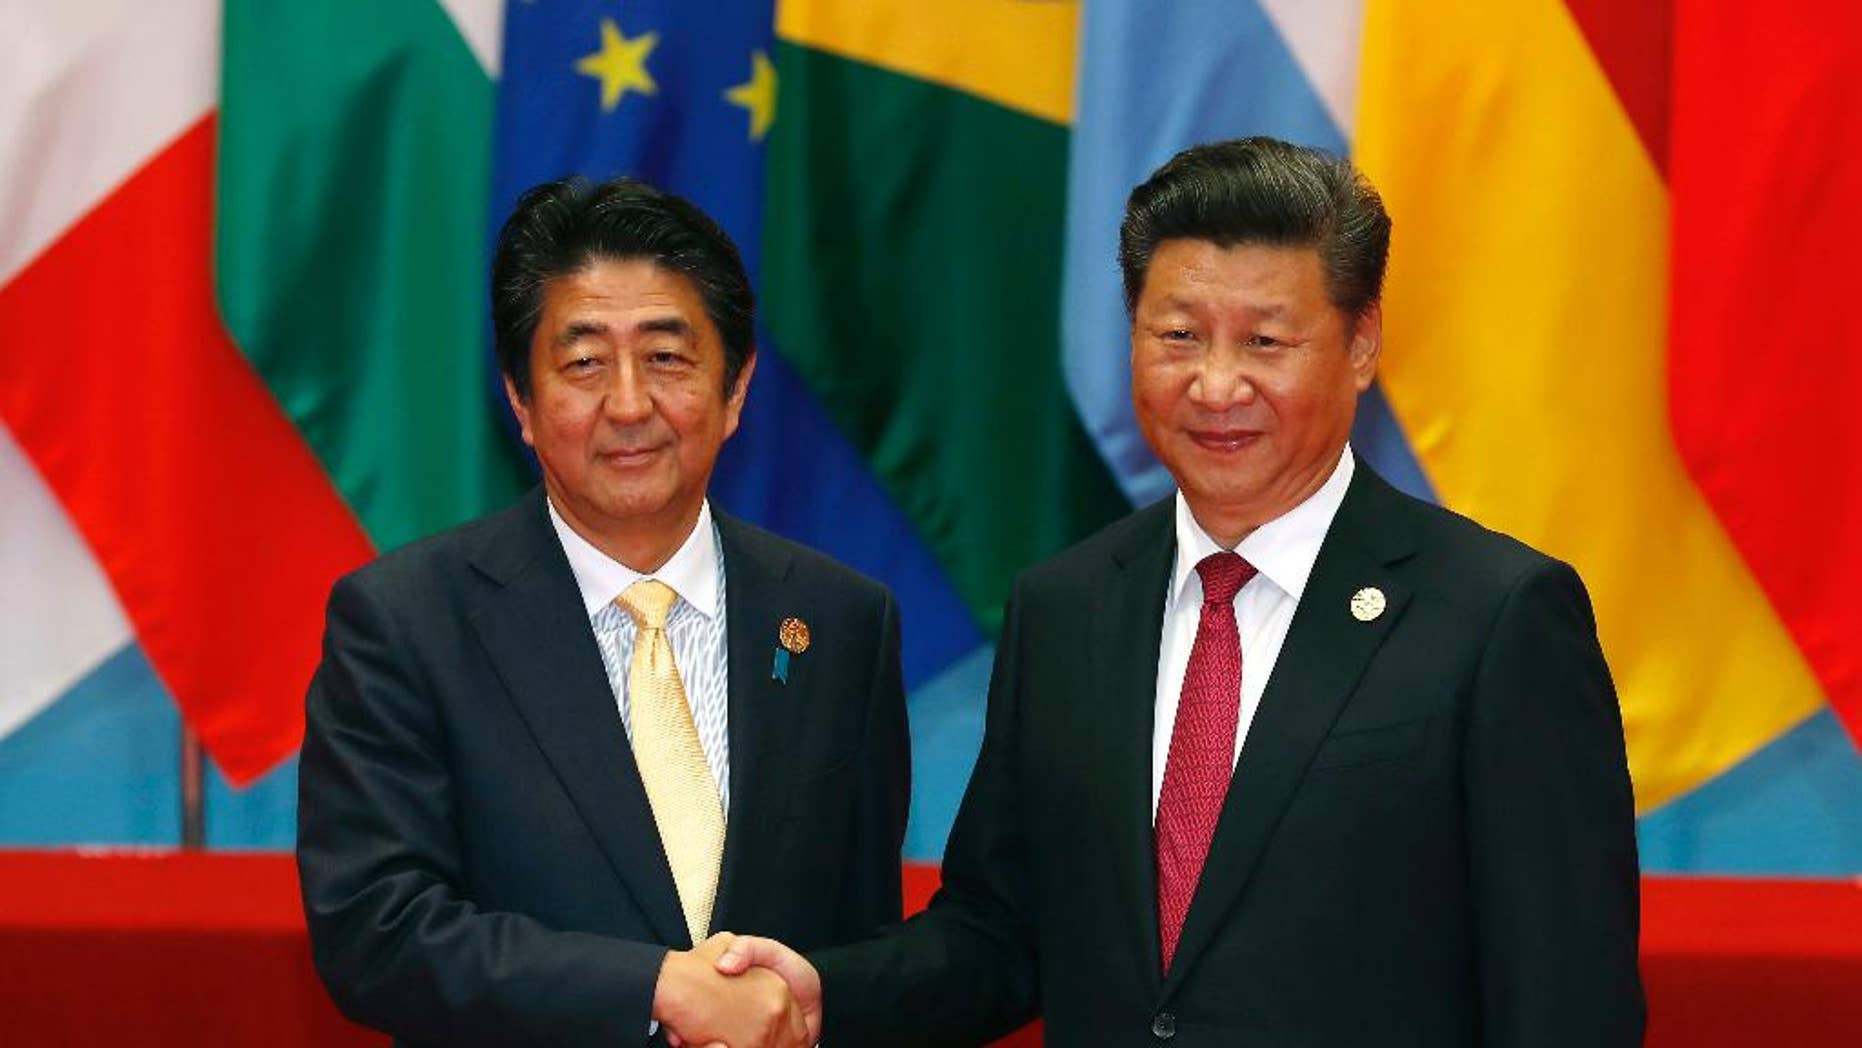 "FILE- In this Sunday, Sept. 4, 2016, file photo, Japan's Prime Minister Shinzo Abe, left, poses with China's President Xi Jinping for a photo before a group photo session for the G20 Summit in Hangzhou in eastern China's Zhejiang province. Four years after they went into a nosedive, tense relations between China and Japan may finally be headed for a sustained return to some semblance of normalcy. Those hopes rest largely on a statement by Chinese President Xi Jinping at a meeting Monday with Japanese Prime Minister Shinzo Abe that it was time to ""put aside disruptions"" and bring ties ""back on the normal track."" (AP Photo/Ng Han Guan, File)"